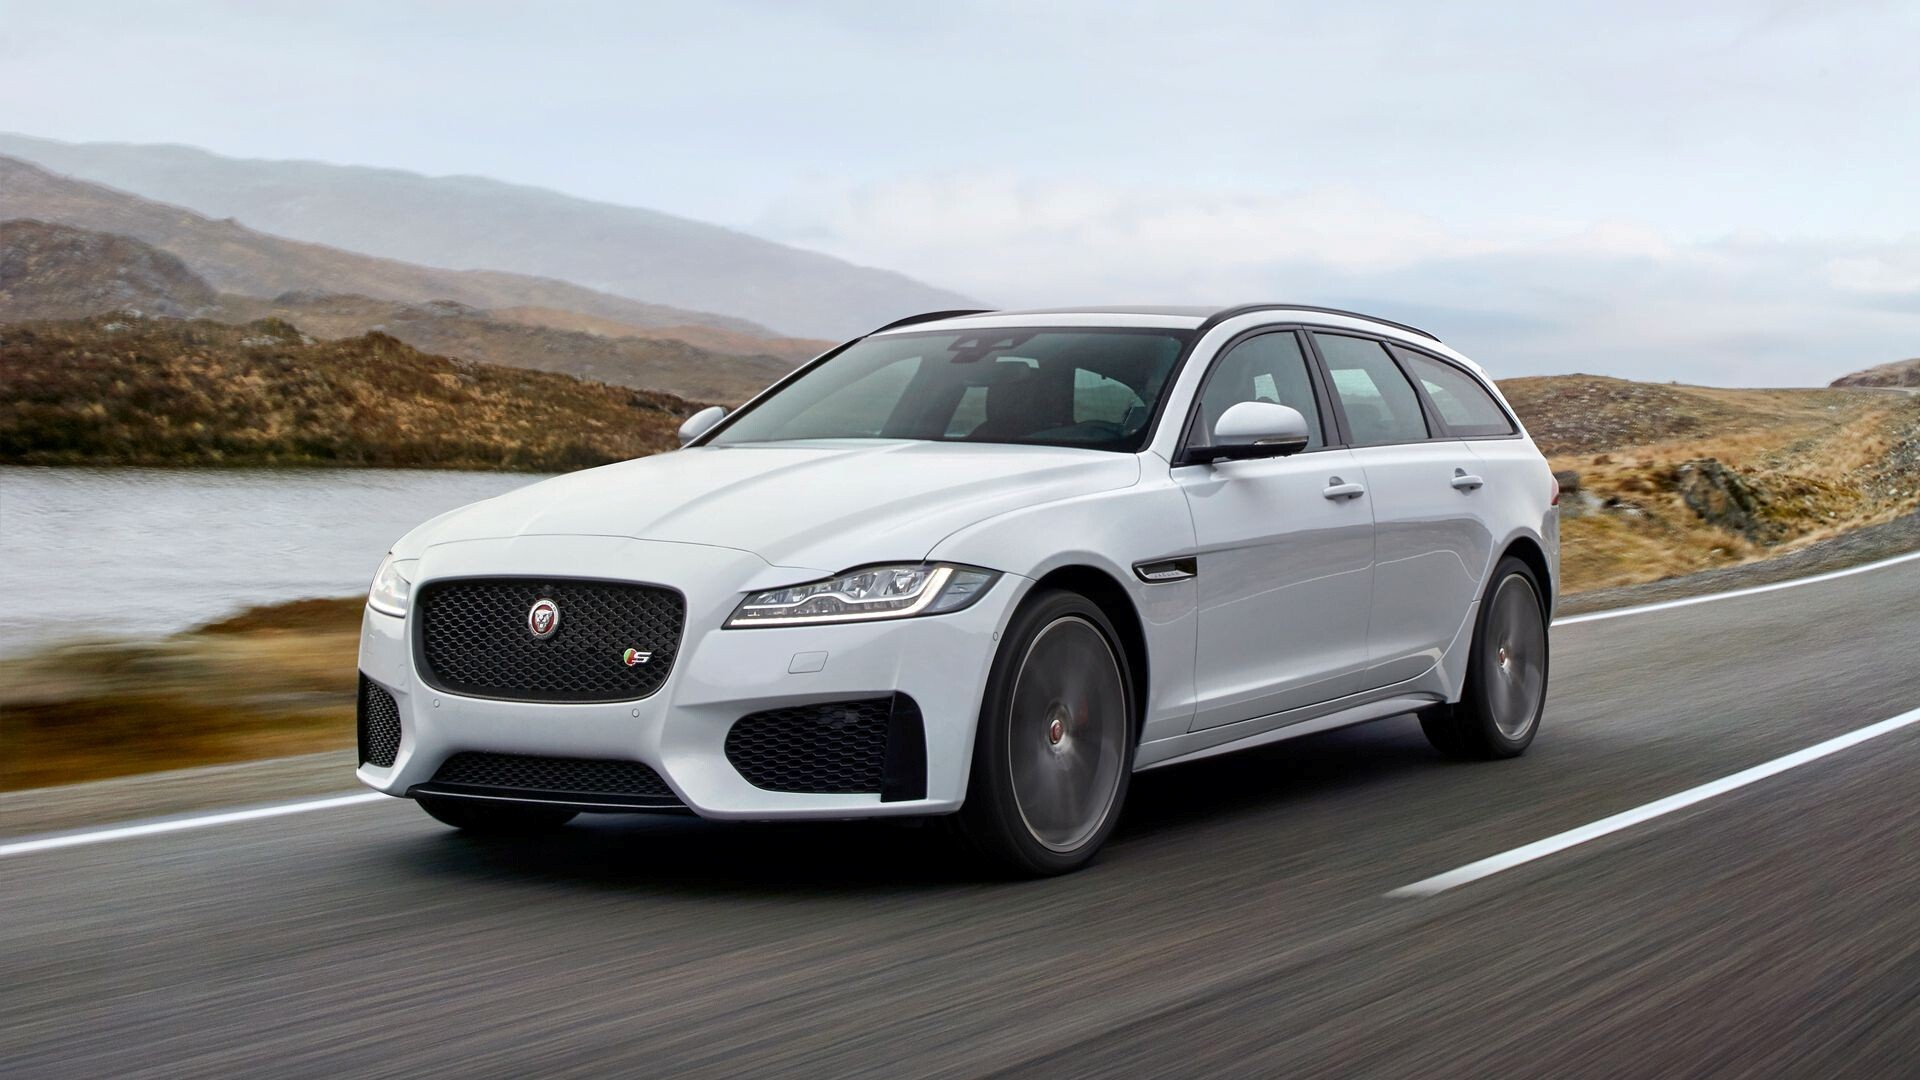 2018 Jaguar Xf Sportbrake Suv Car Hd Wallpapers